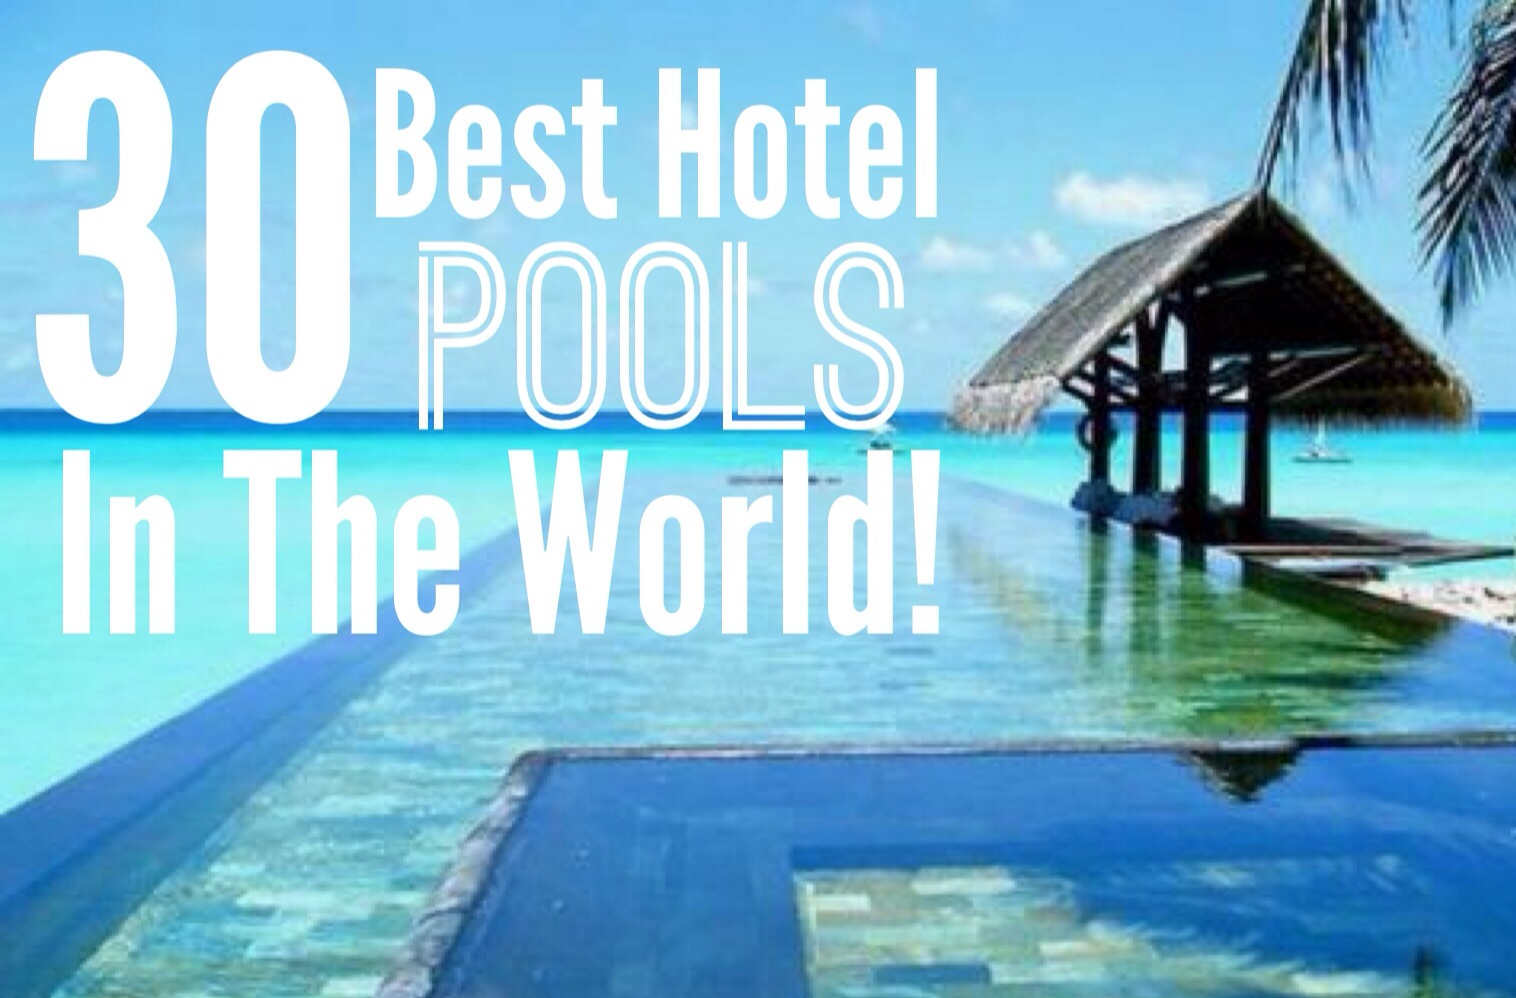 30 Best Hotel Pools In The World